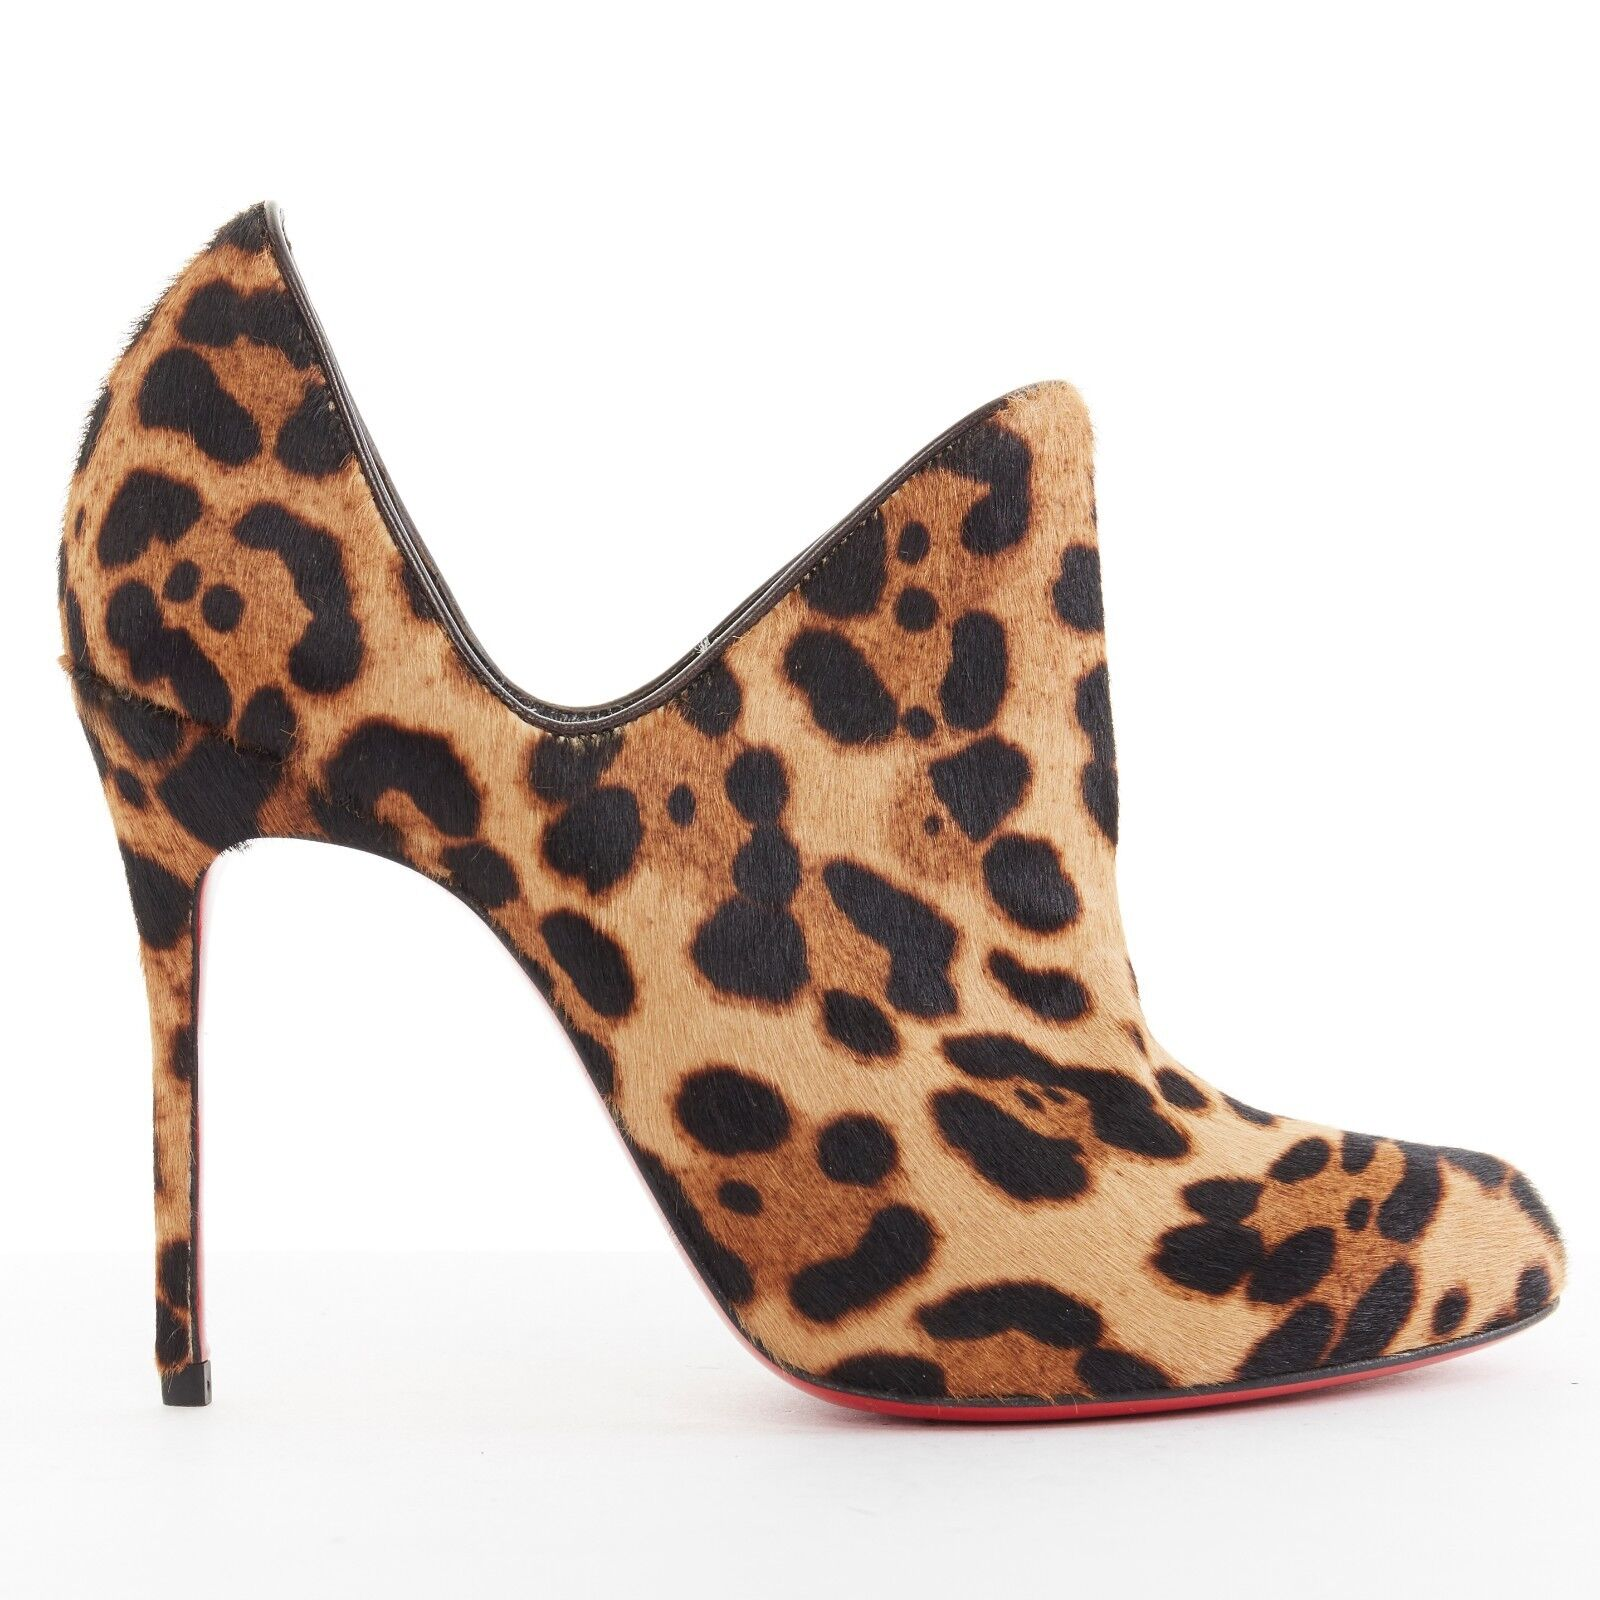 New CHRISTIAN LOUBOUTIN Dugueclina 100 leopard calf dipped stiletto bootie EU37